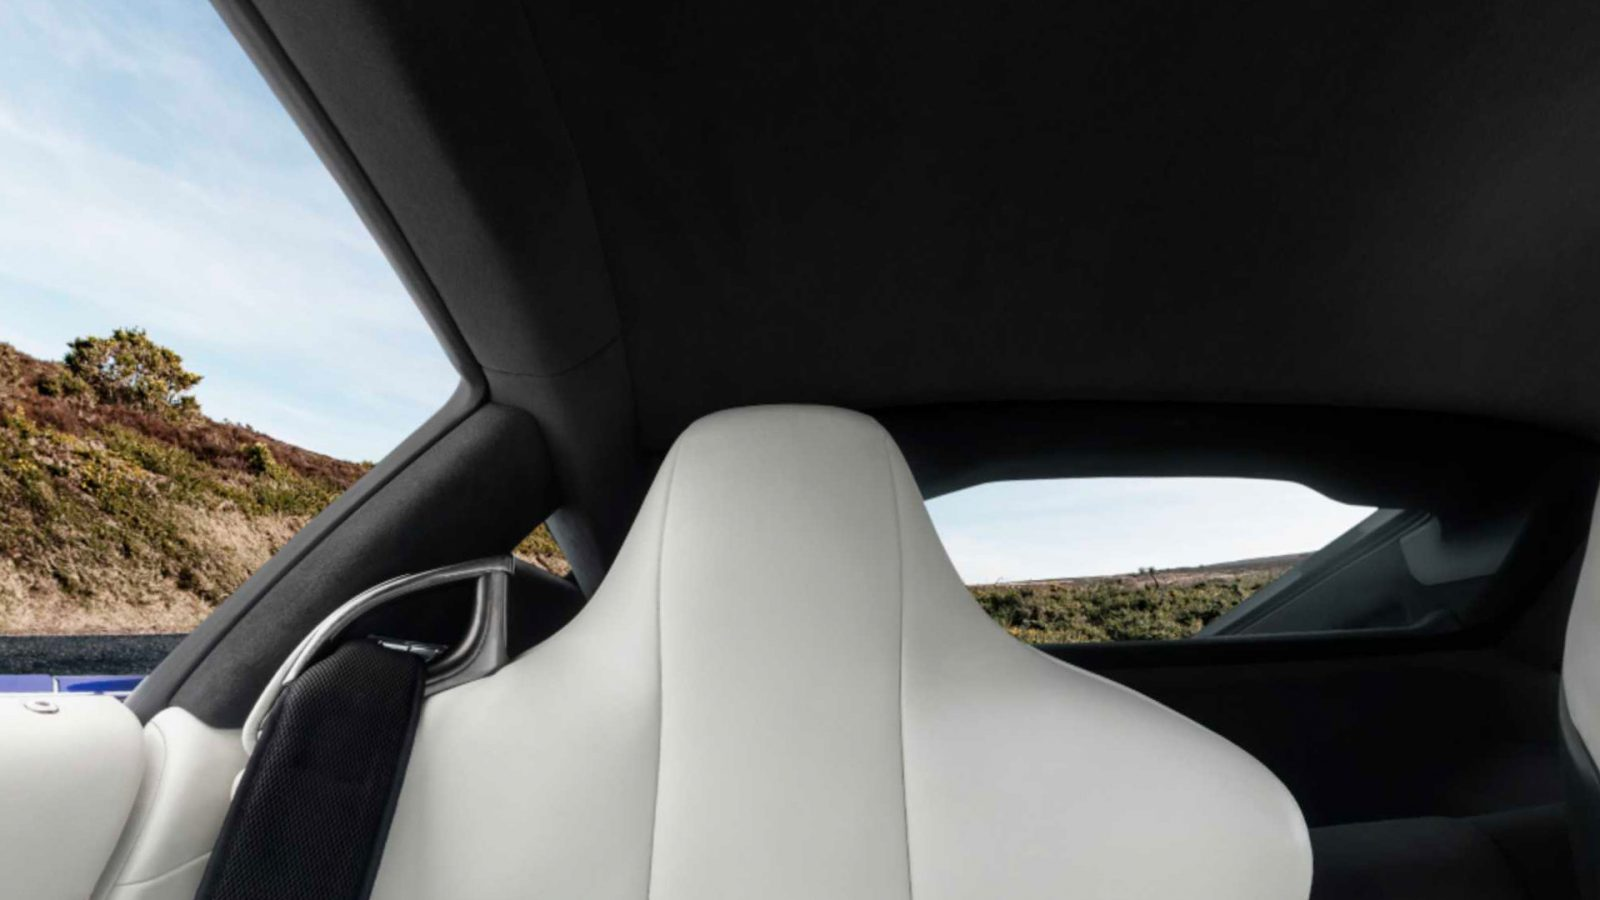 Virtual background of Lexus LFA interior